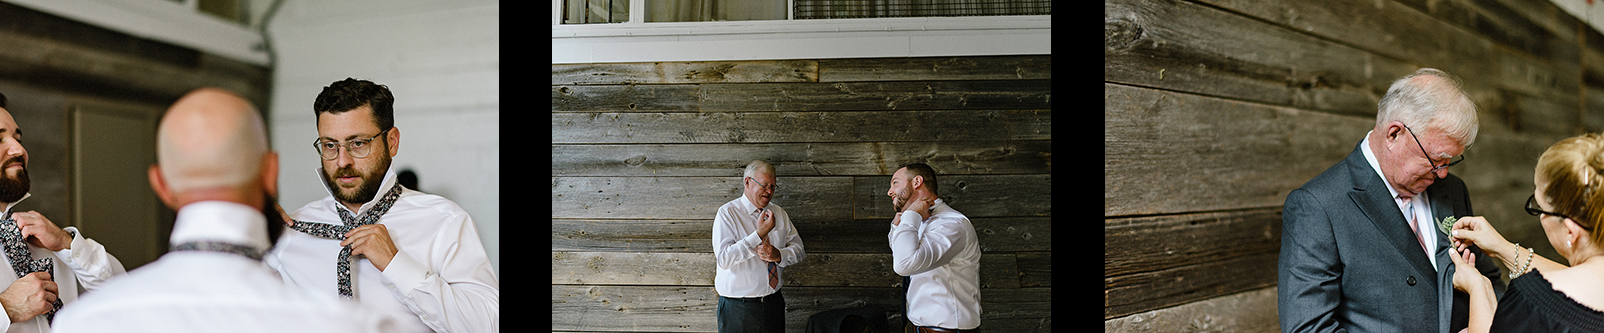 3-Toronto-Wedding-Photographers-3B-Photography-Airship37-Wedding-Photos-Documentary-Photojournalistic-Wedding-Photography-Venue-Details-Father-of-the-bride-helping-groom-with-tie-candid.jpg